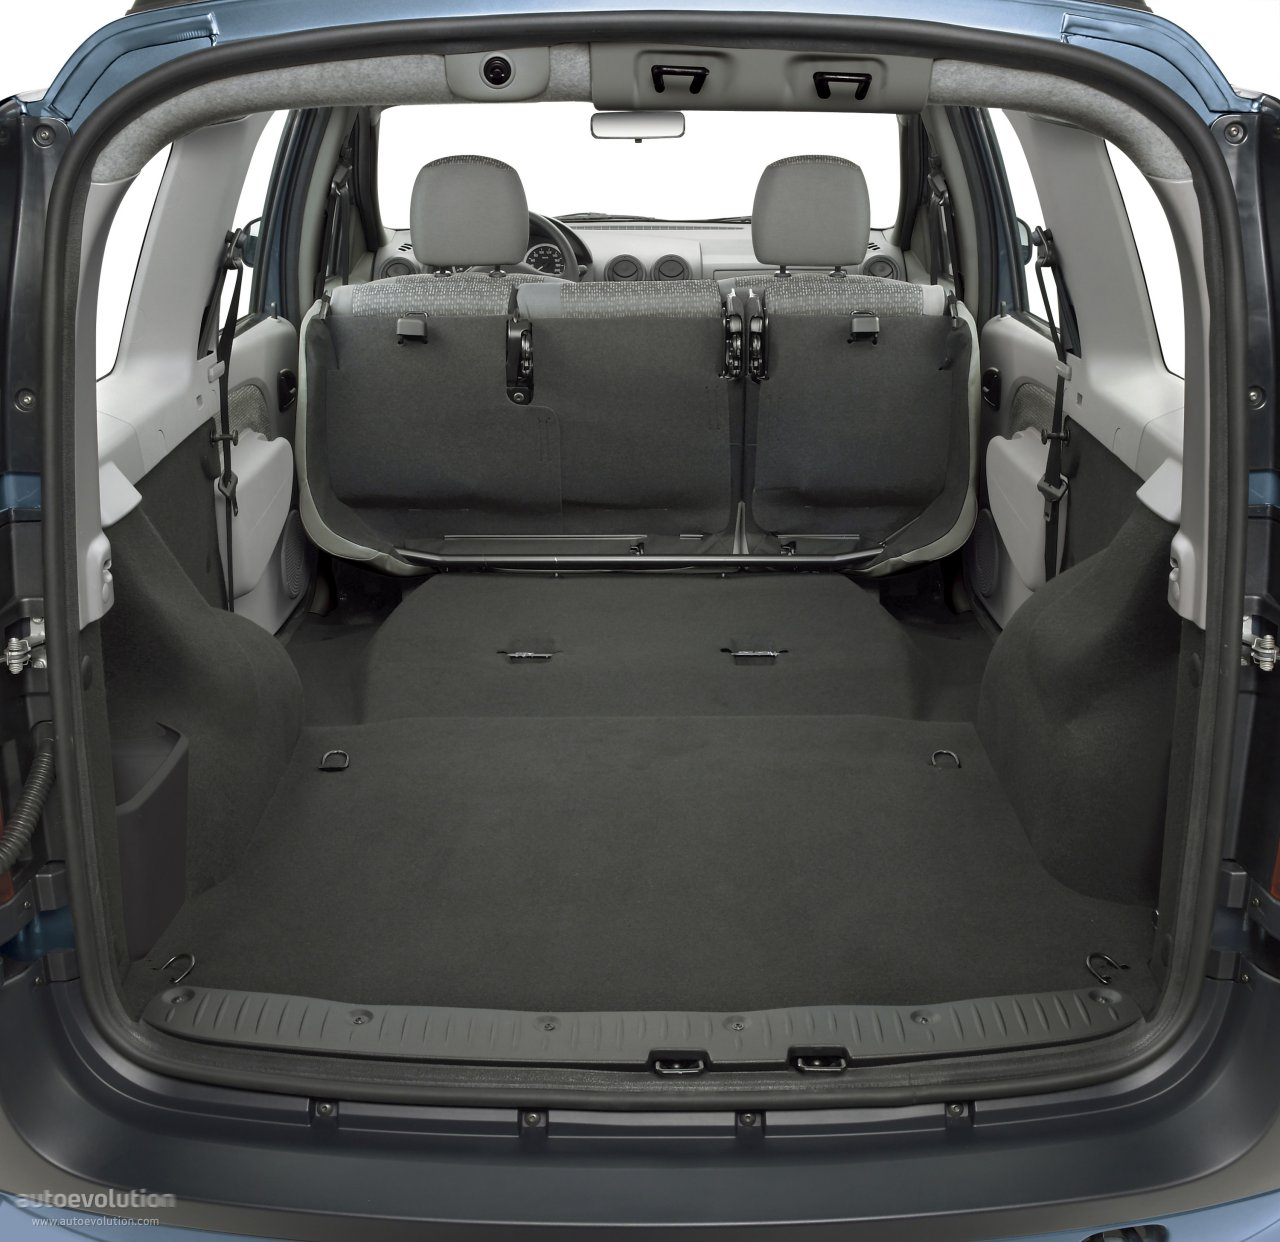 dacia logan mcv specs 2006 2007 2008 autoevolution. Black Bedroom Furniture Sets. Home Design Ideas